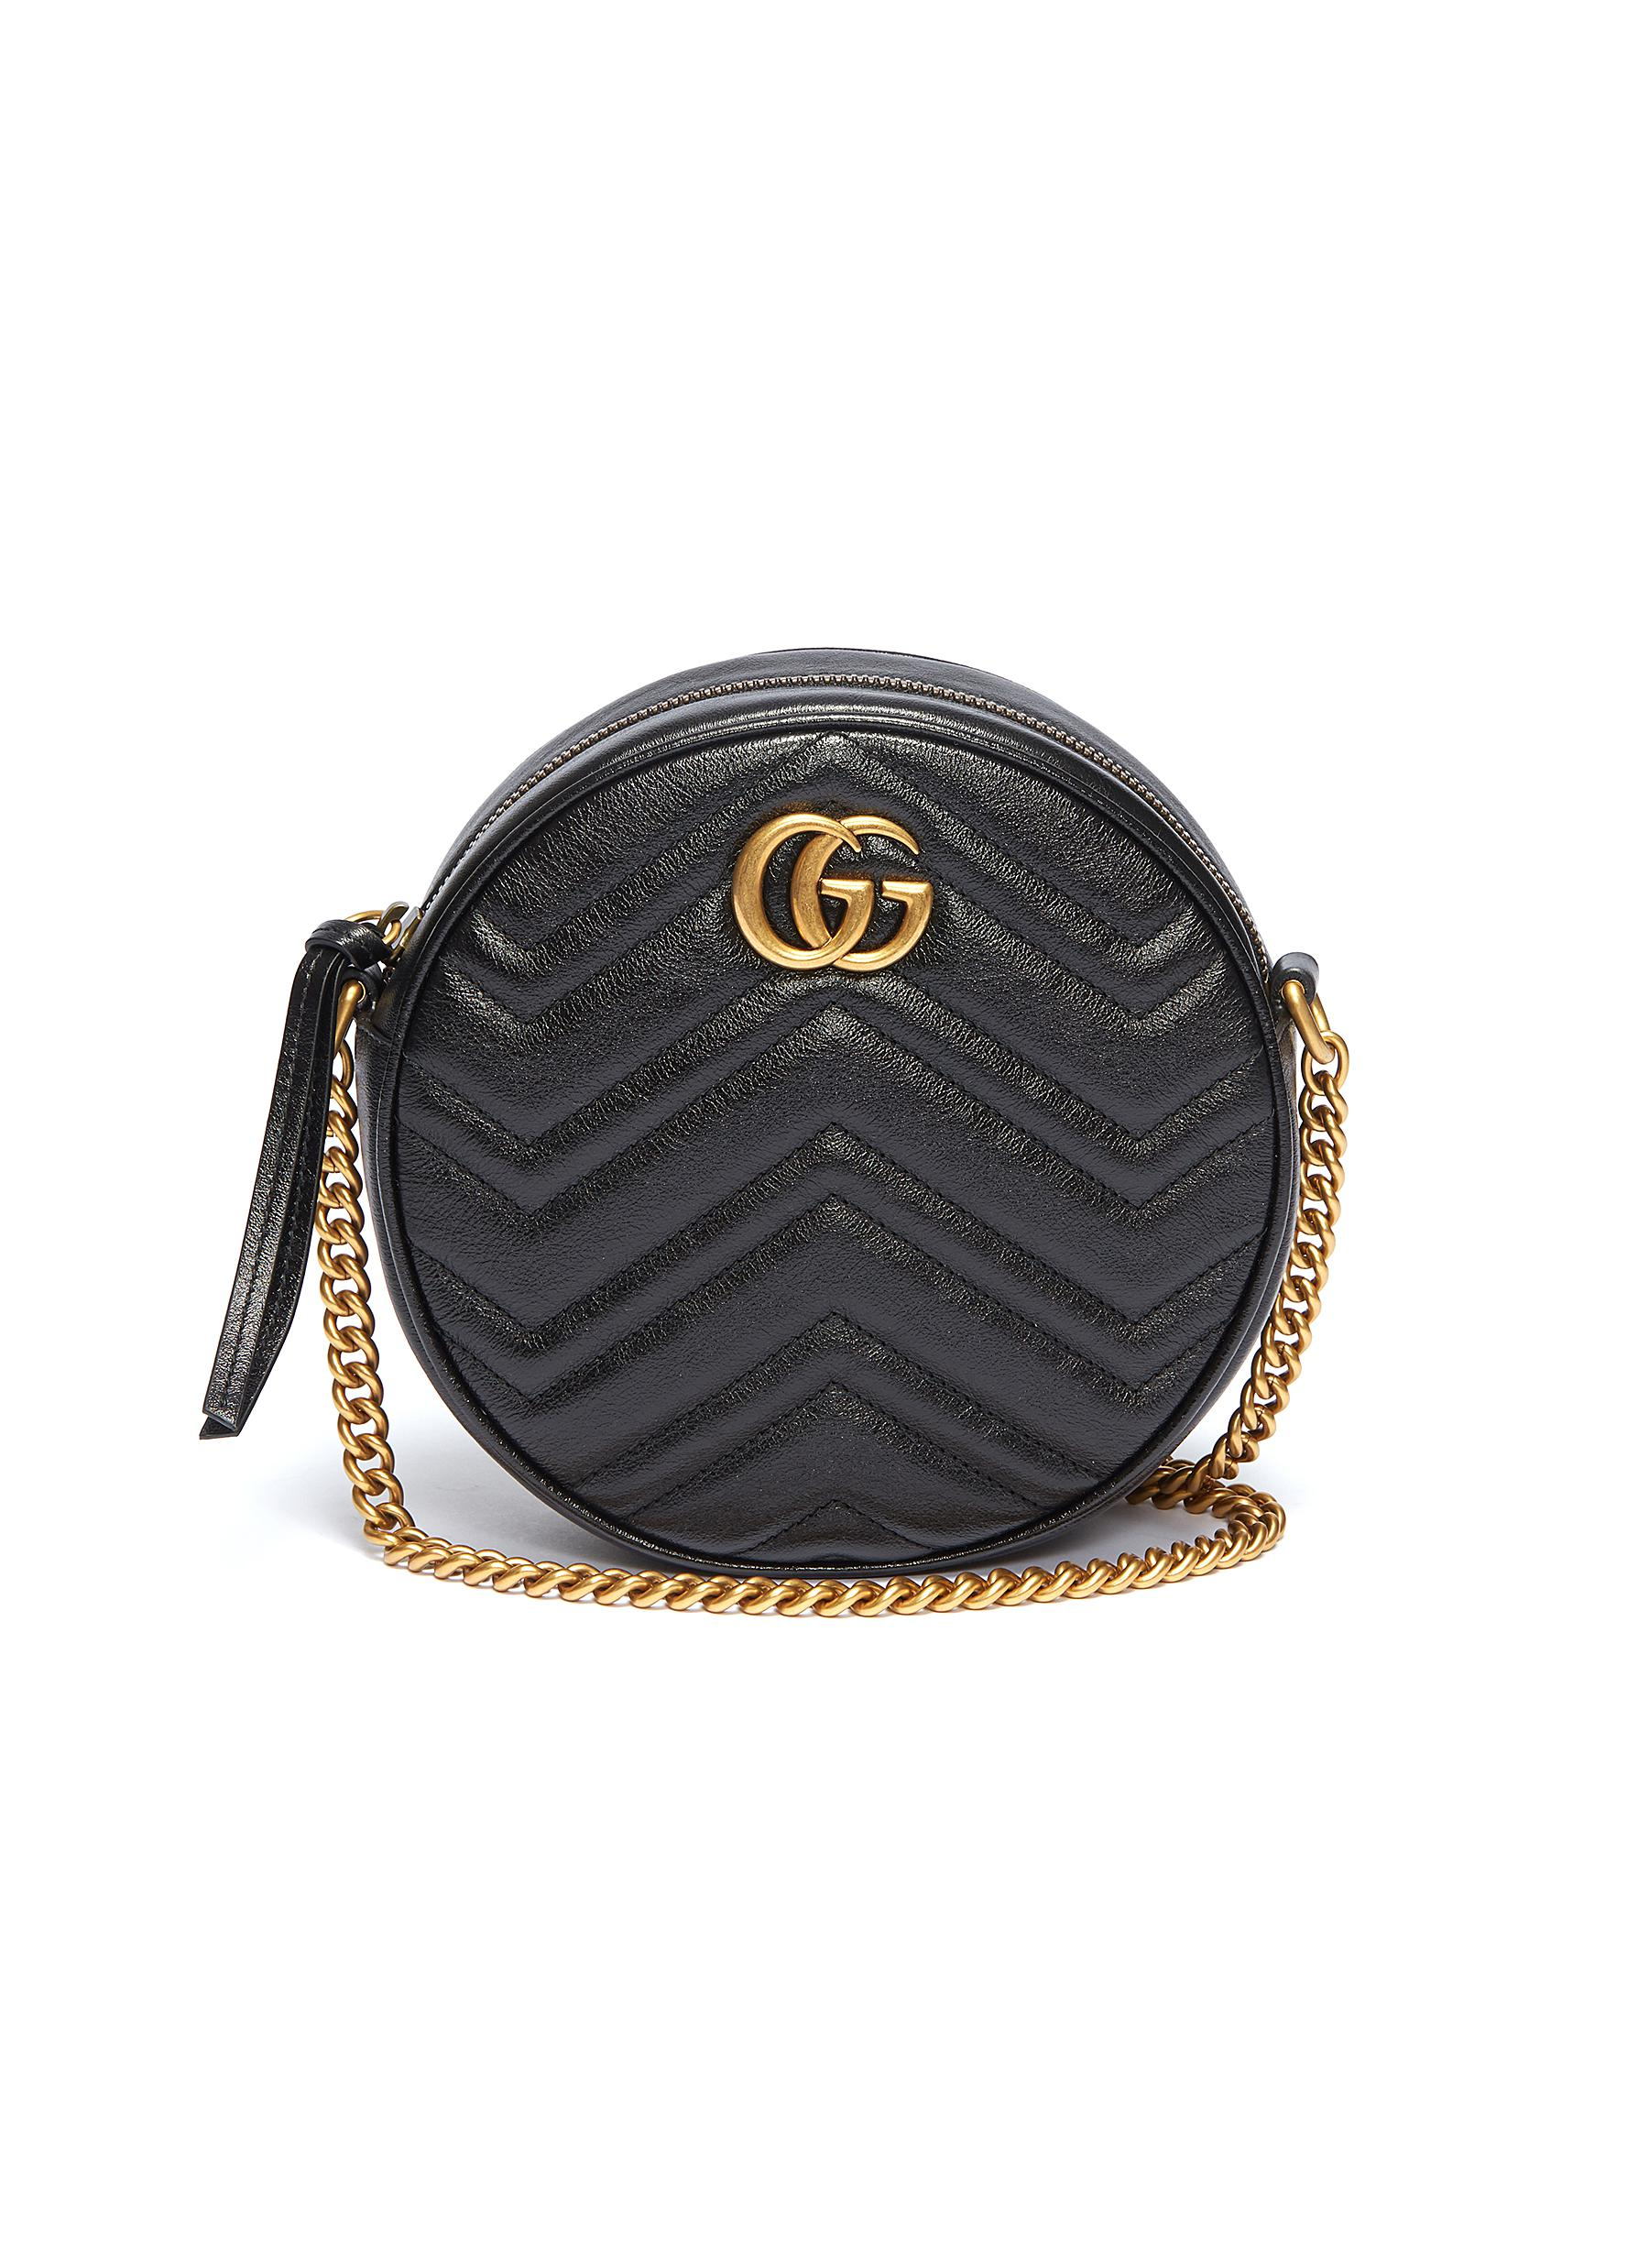 765a1522e397 Gucci.  GG Marmont  round matelassé leather crossbody bag